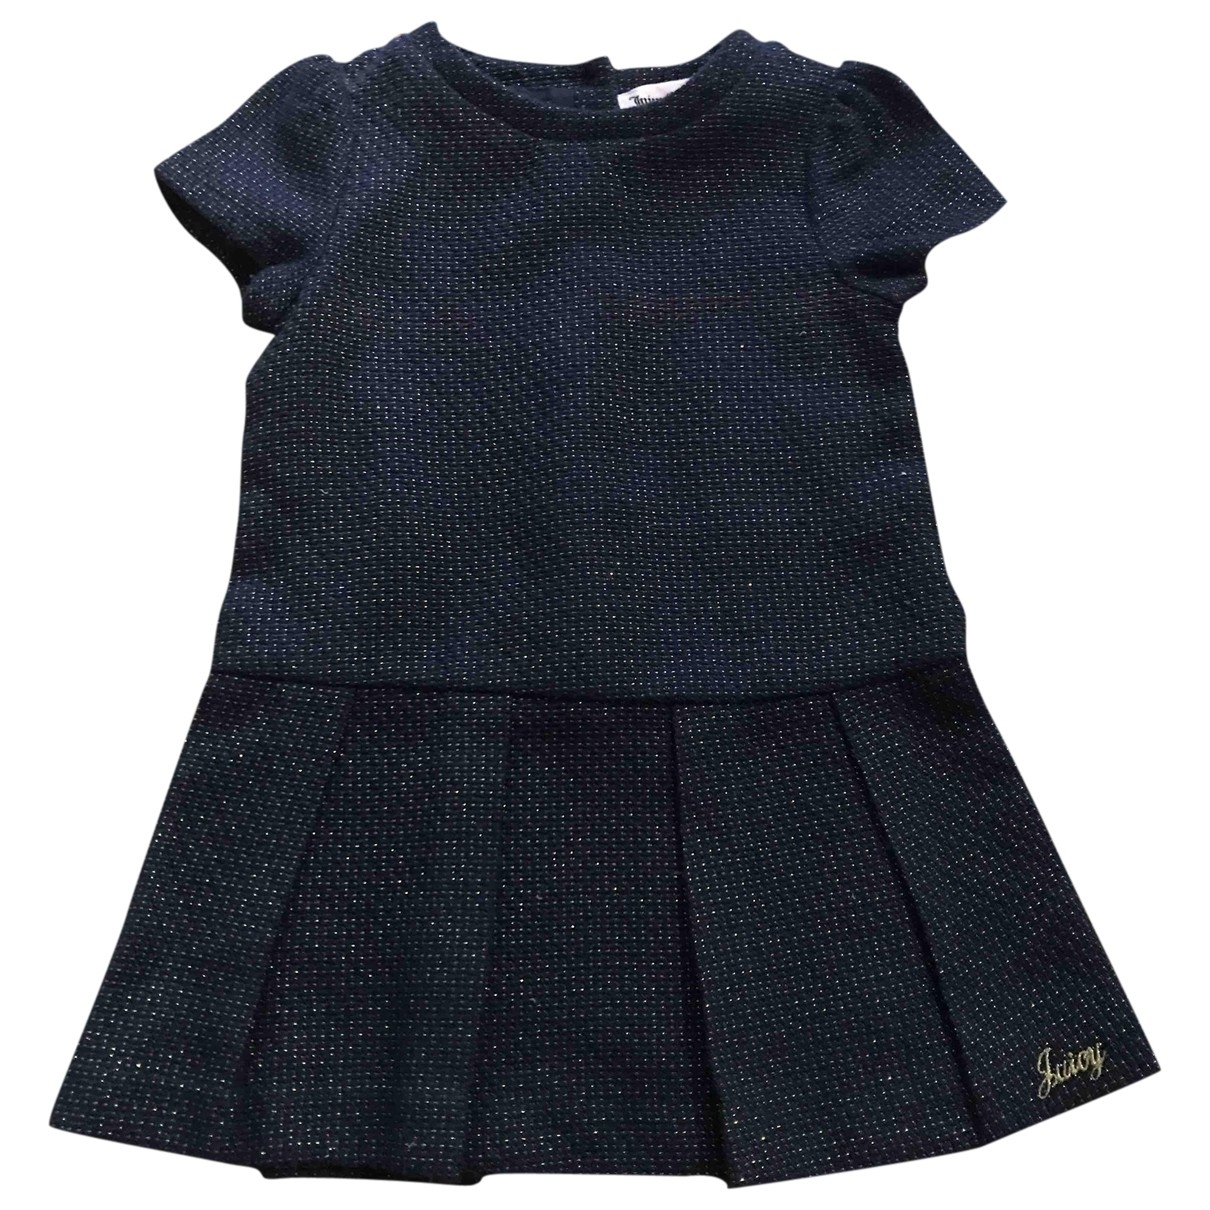 Juicy Couture \N Blue dress for Kids 18 months - up to 81cm FR